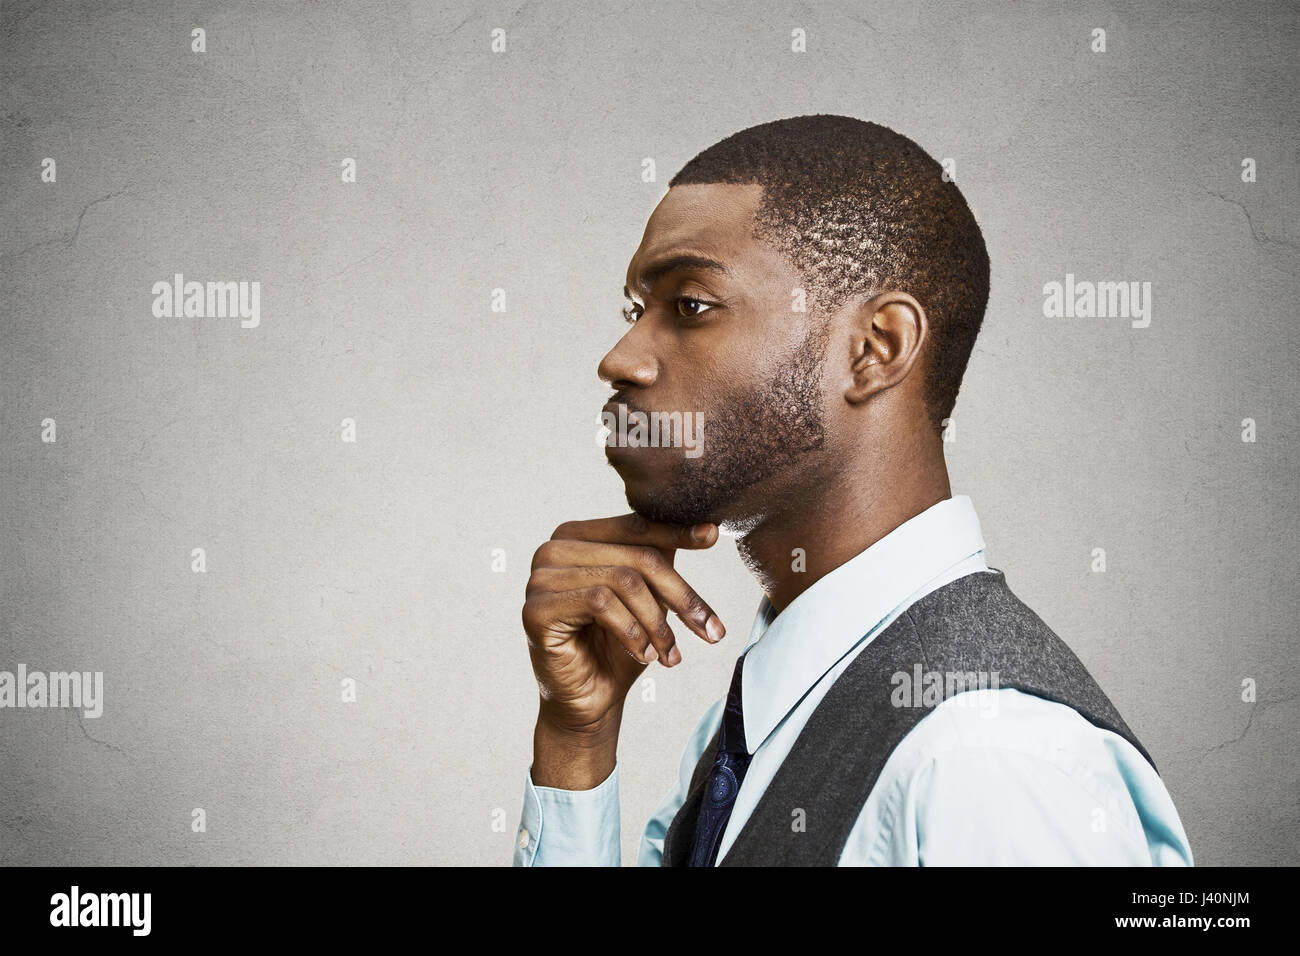 Closeup Side View Profile Portrait Headshot Young Man Daydreaming Deeply About Something With Chin On Hand Looking Down Isolated Black Background S